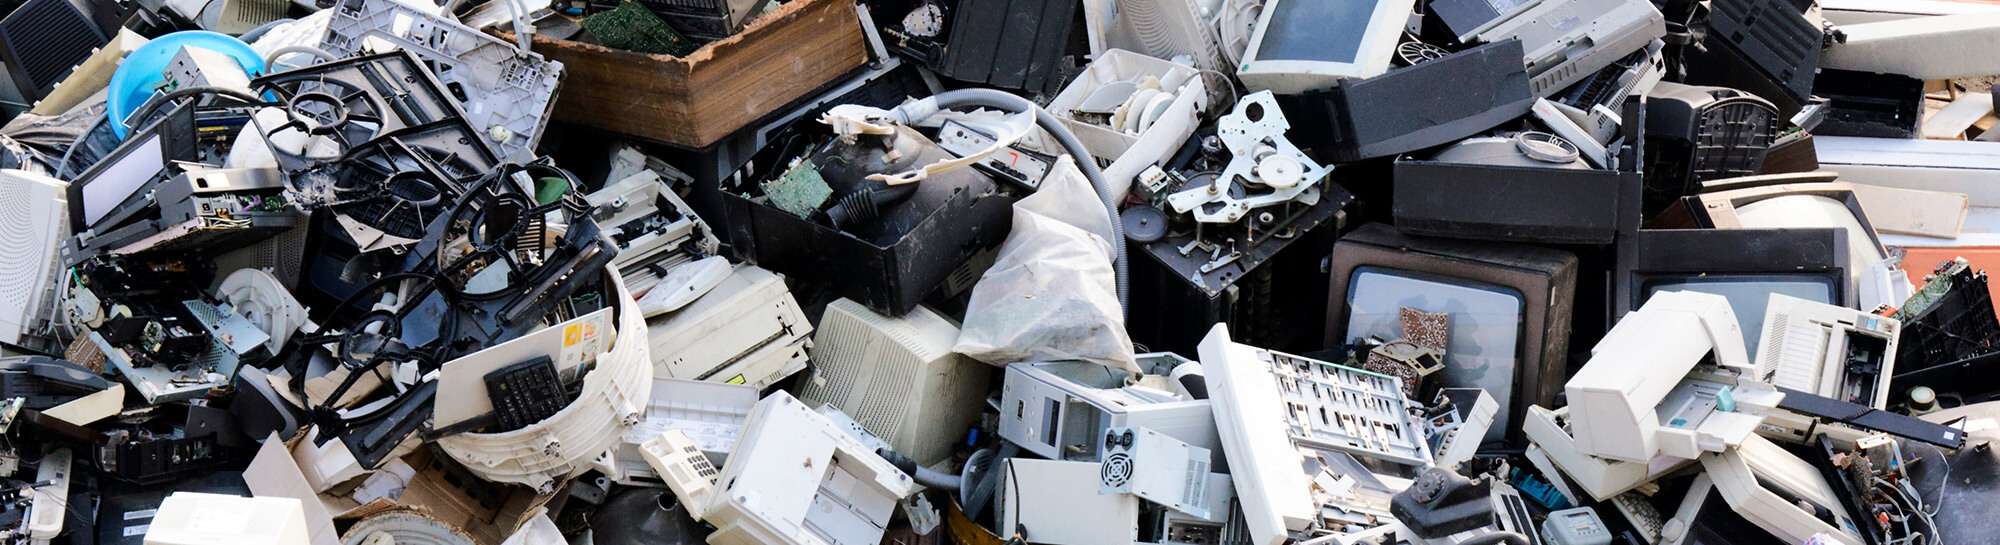 Pile of obsolete computers, scanners, and electronic devices